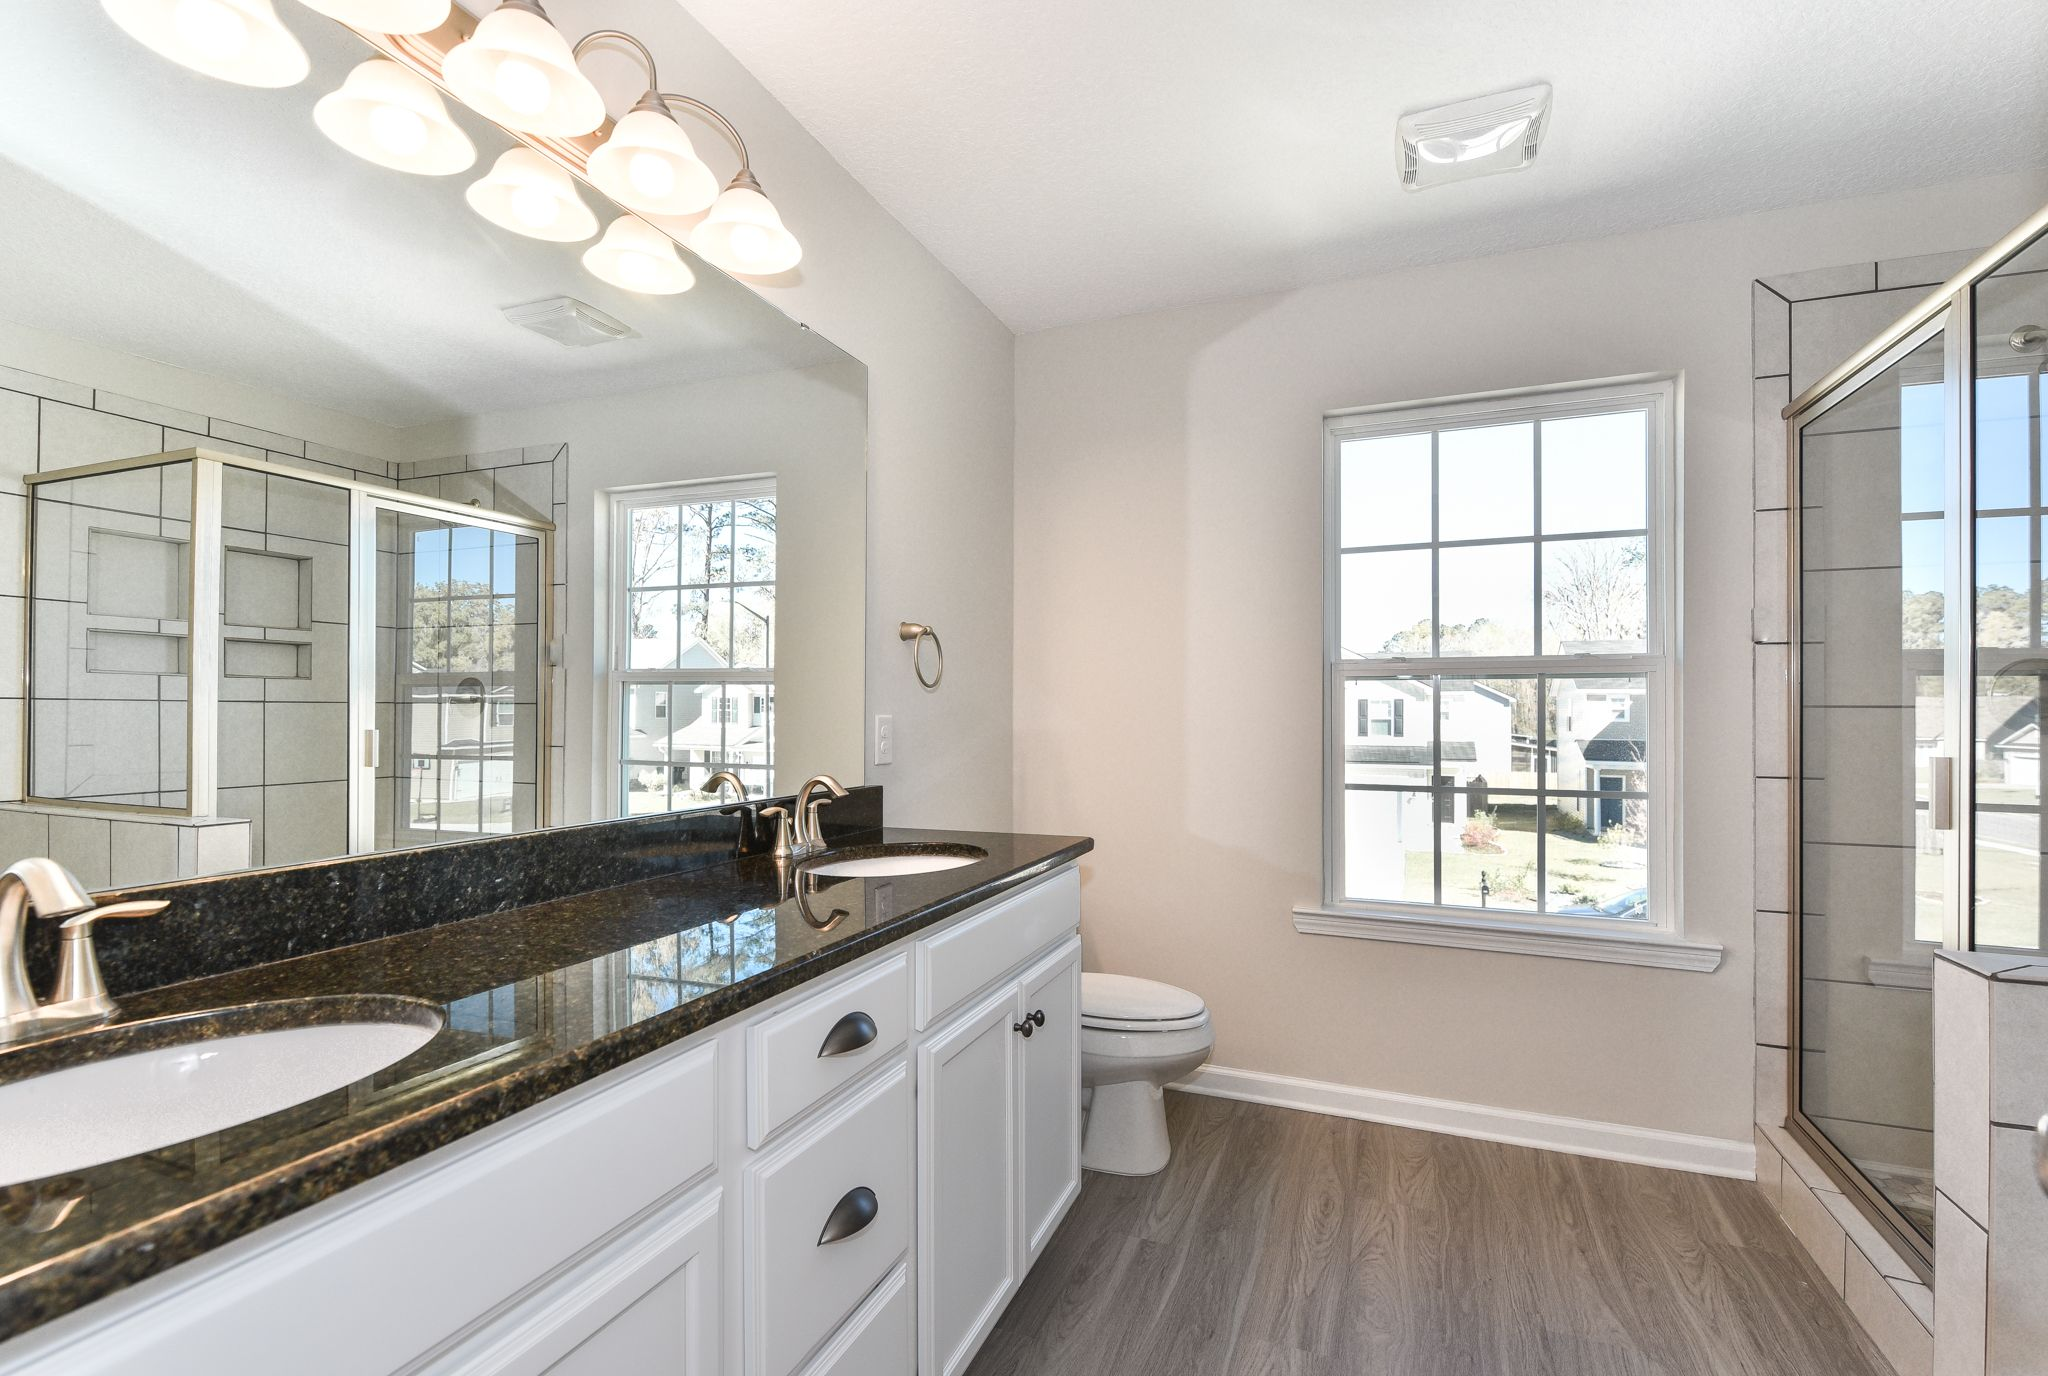 Bathroom featured in the Nantucket By Ernest Homes in Savannah, GA